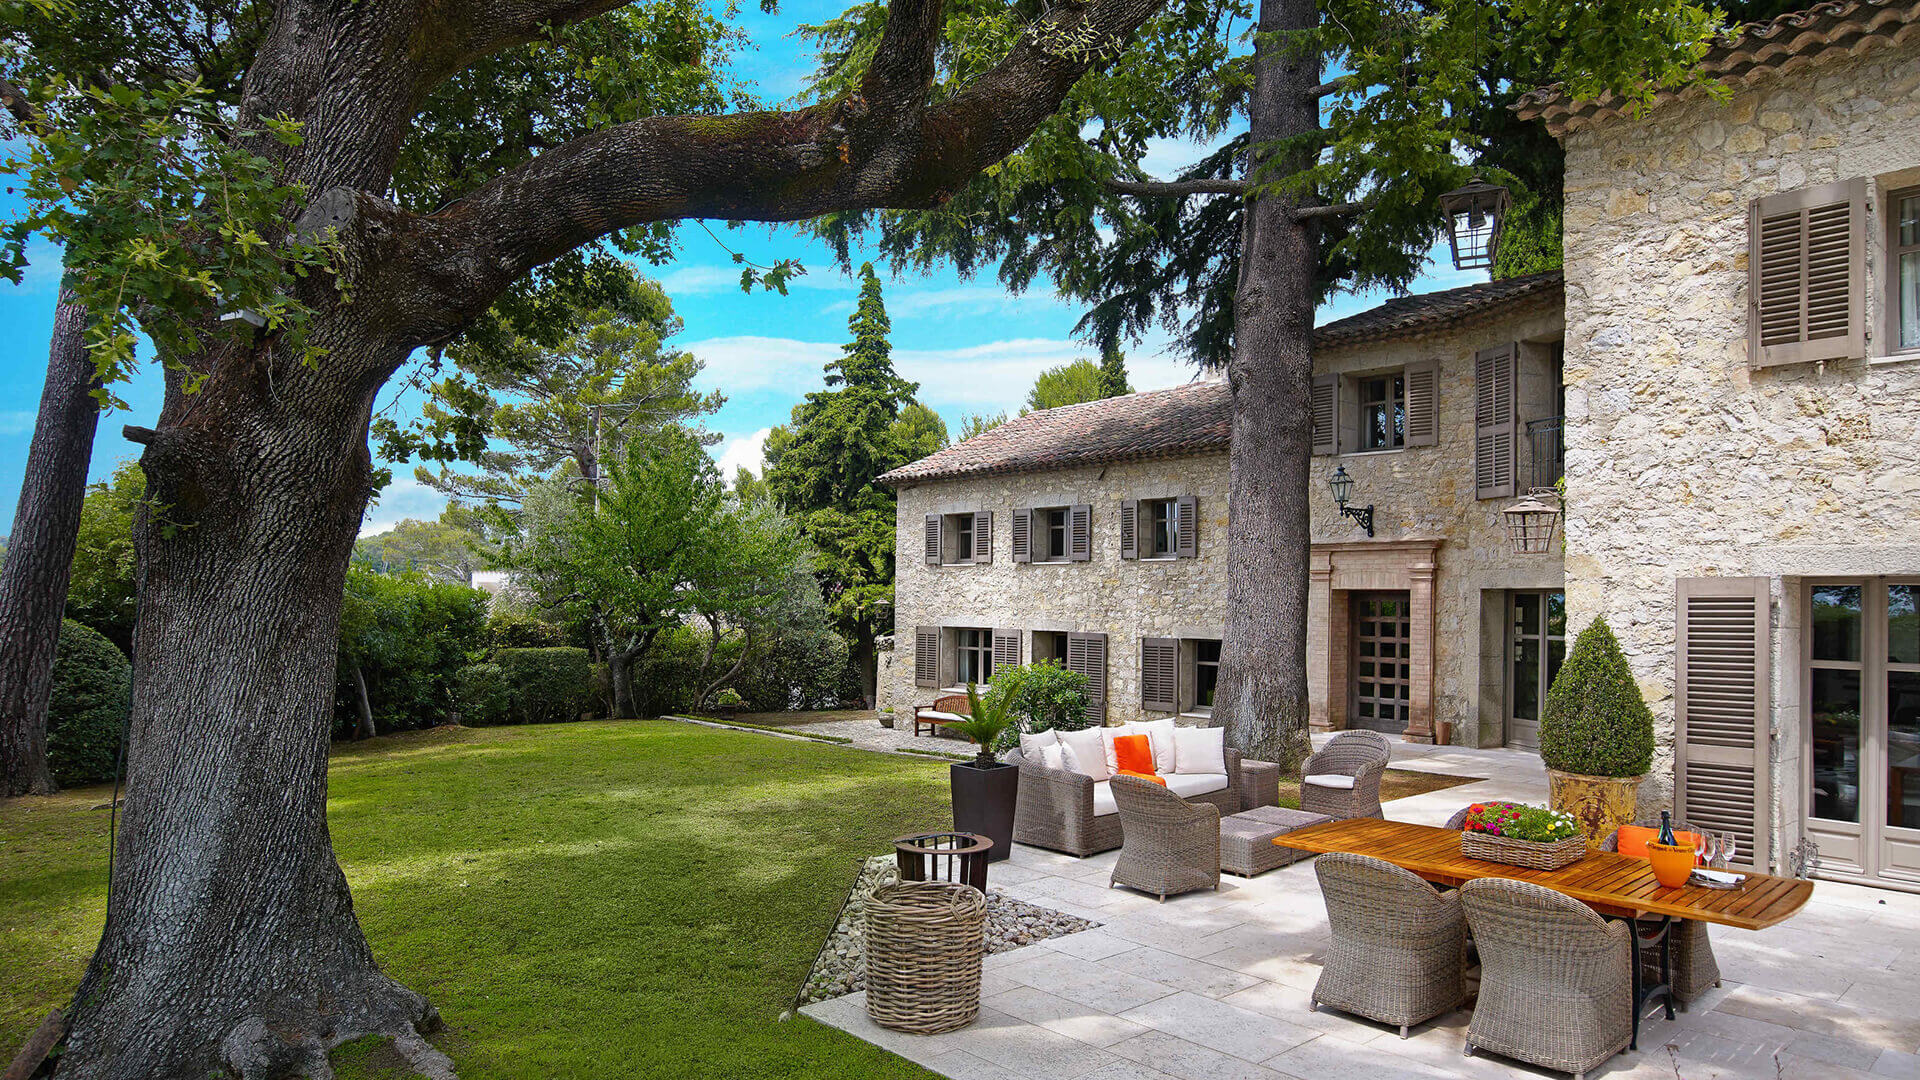 French chateau for rent